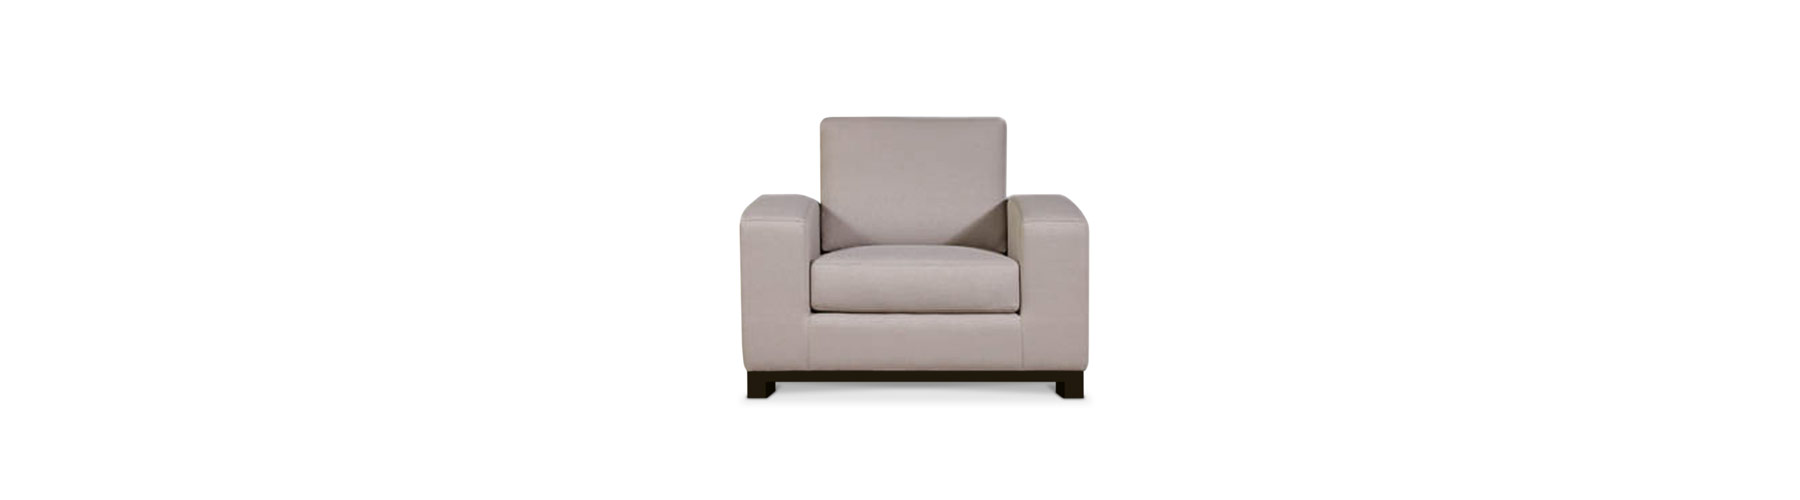 Broadway - Fauteuil William